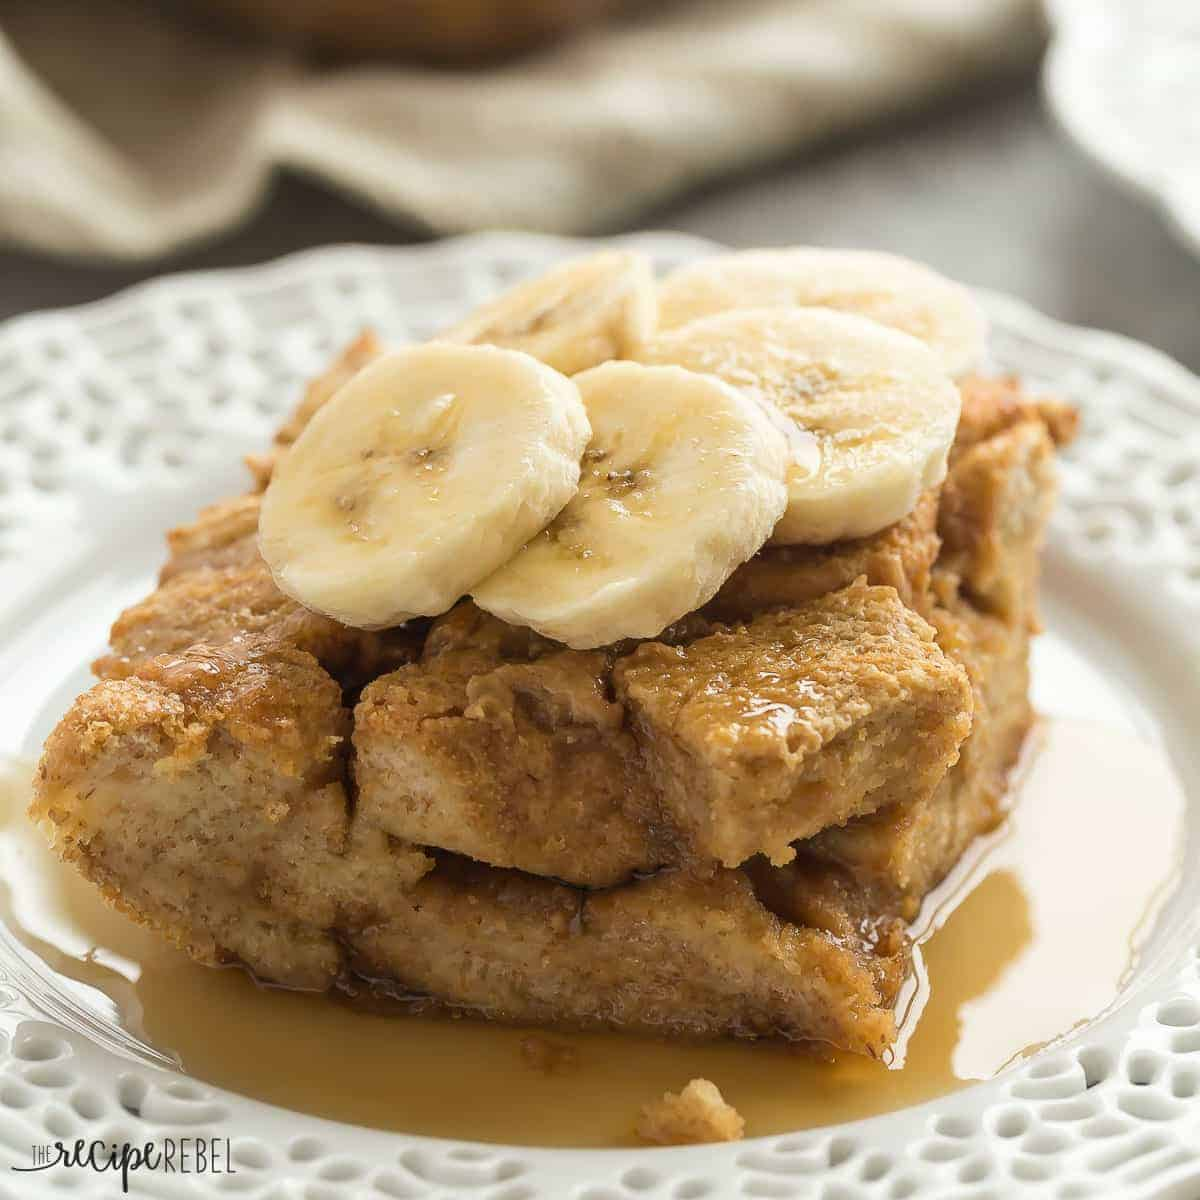 This Overnight Peanut Butter French Toast Casserole is an easy, make ahead breakfast that's perfect for the Thanksgiving or Christmas brunch! It's a new twist on a favorite that everyone will love!